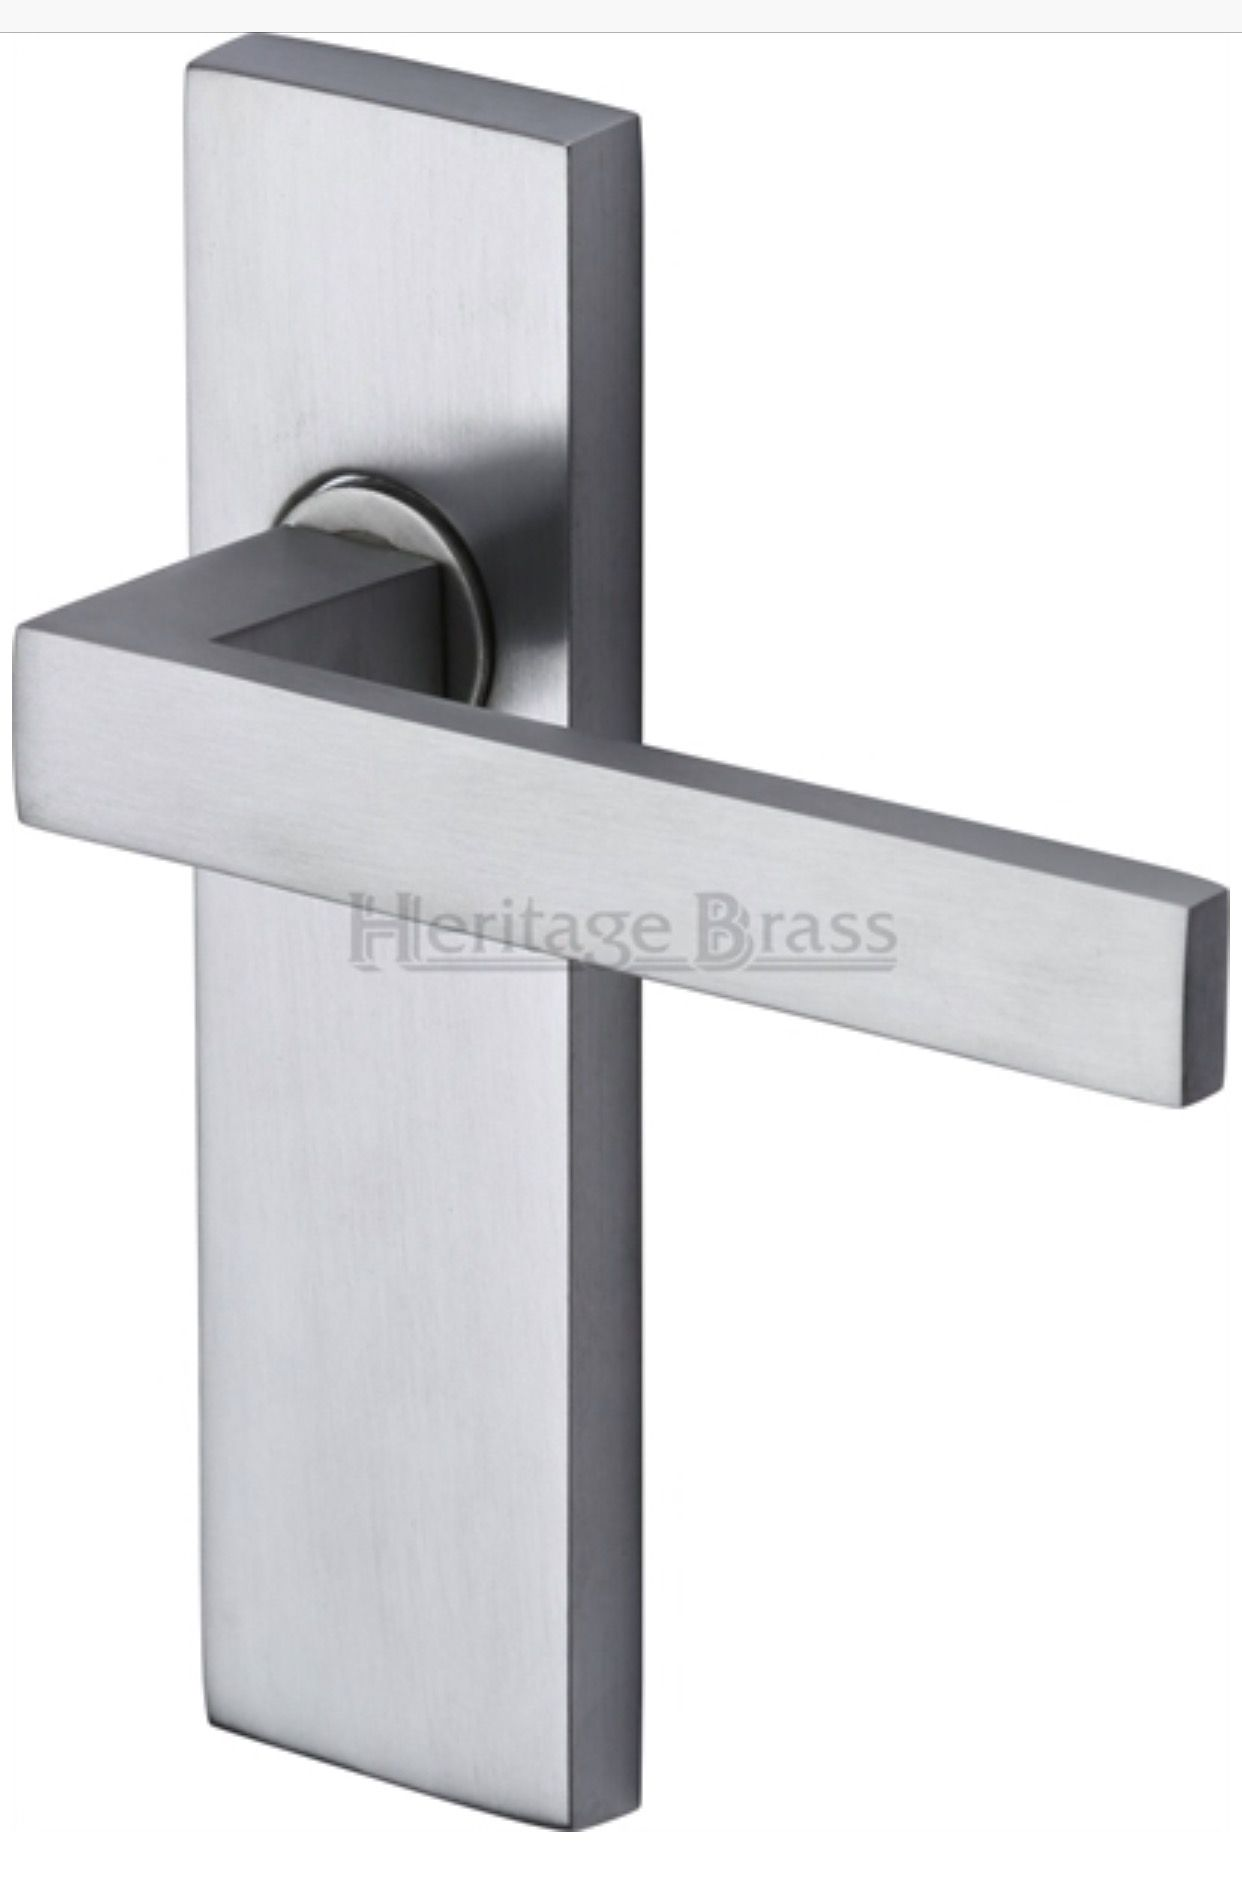 delta door handles on backplate dimensions 157mm x 43mm supplied